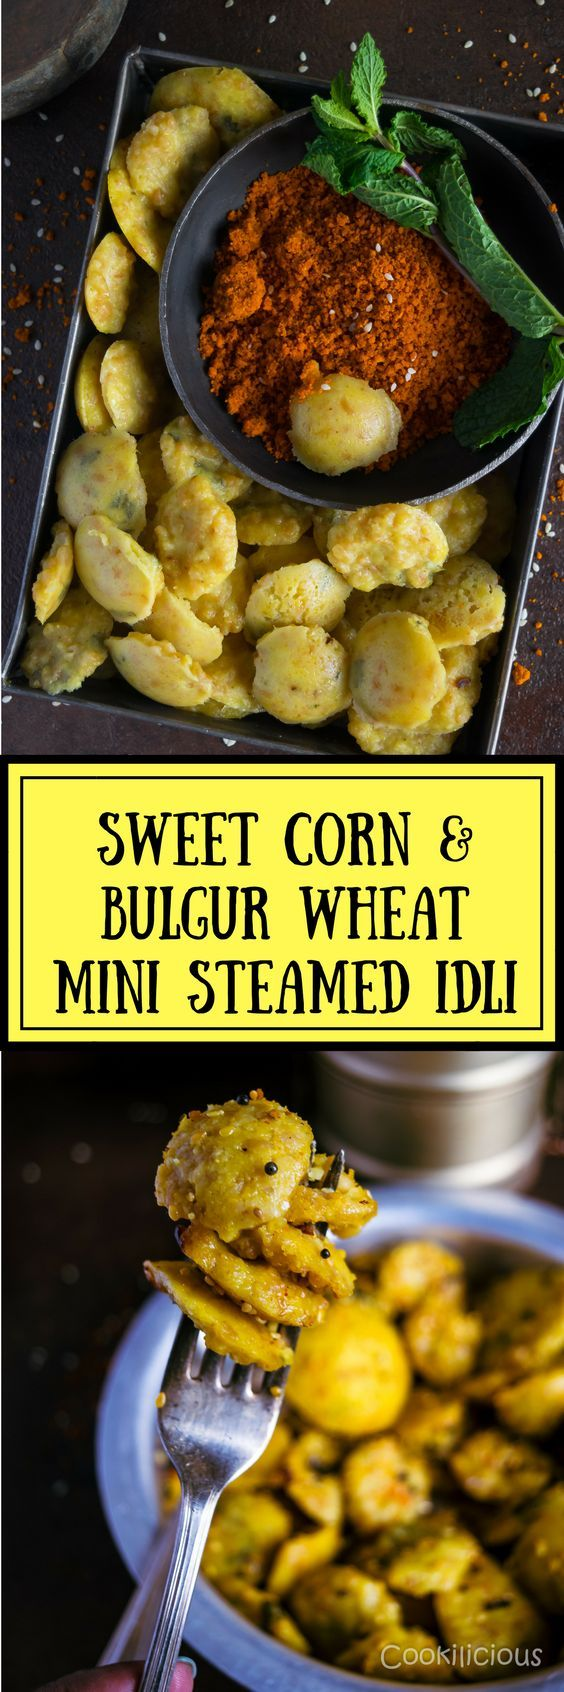 Sweet Corn & Bulgur Wheat Mini Steamed Cakes or idli is one nutritious breakfast recipe. It's a healthier fusion of Gujarati & South Indian cuisine. Dhokla batter made with daliya, sweet corn & semolina is used to make these delicious steamed idlis that can be served for breakfast or as a light snack.  via @cookiliciousveg